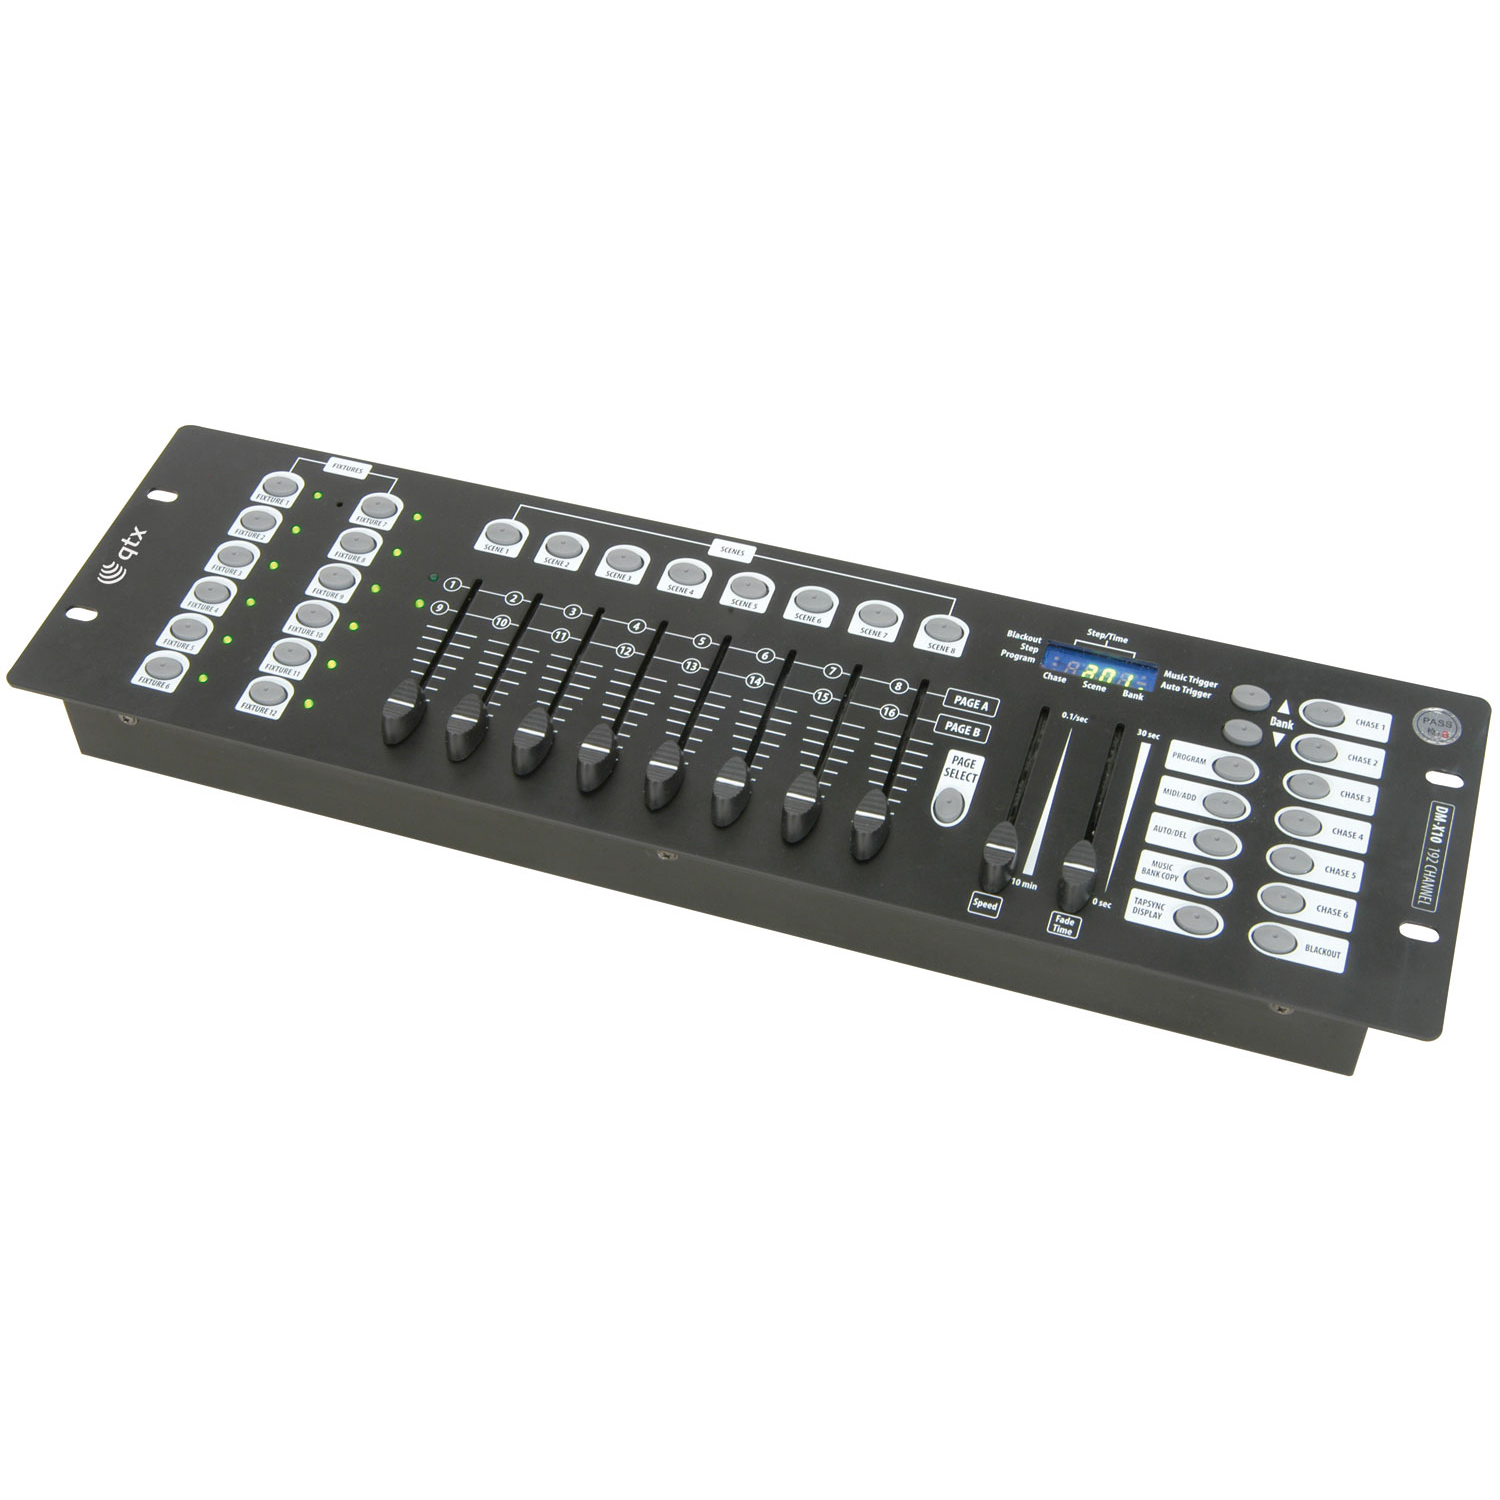 192 channel dmx lighting controller one way uk. Black Bedroom Furniture Sets. Home Design Ideas